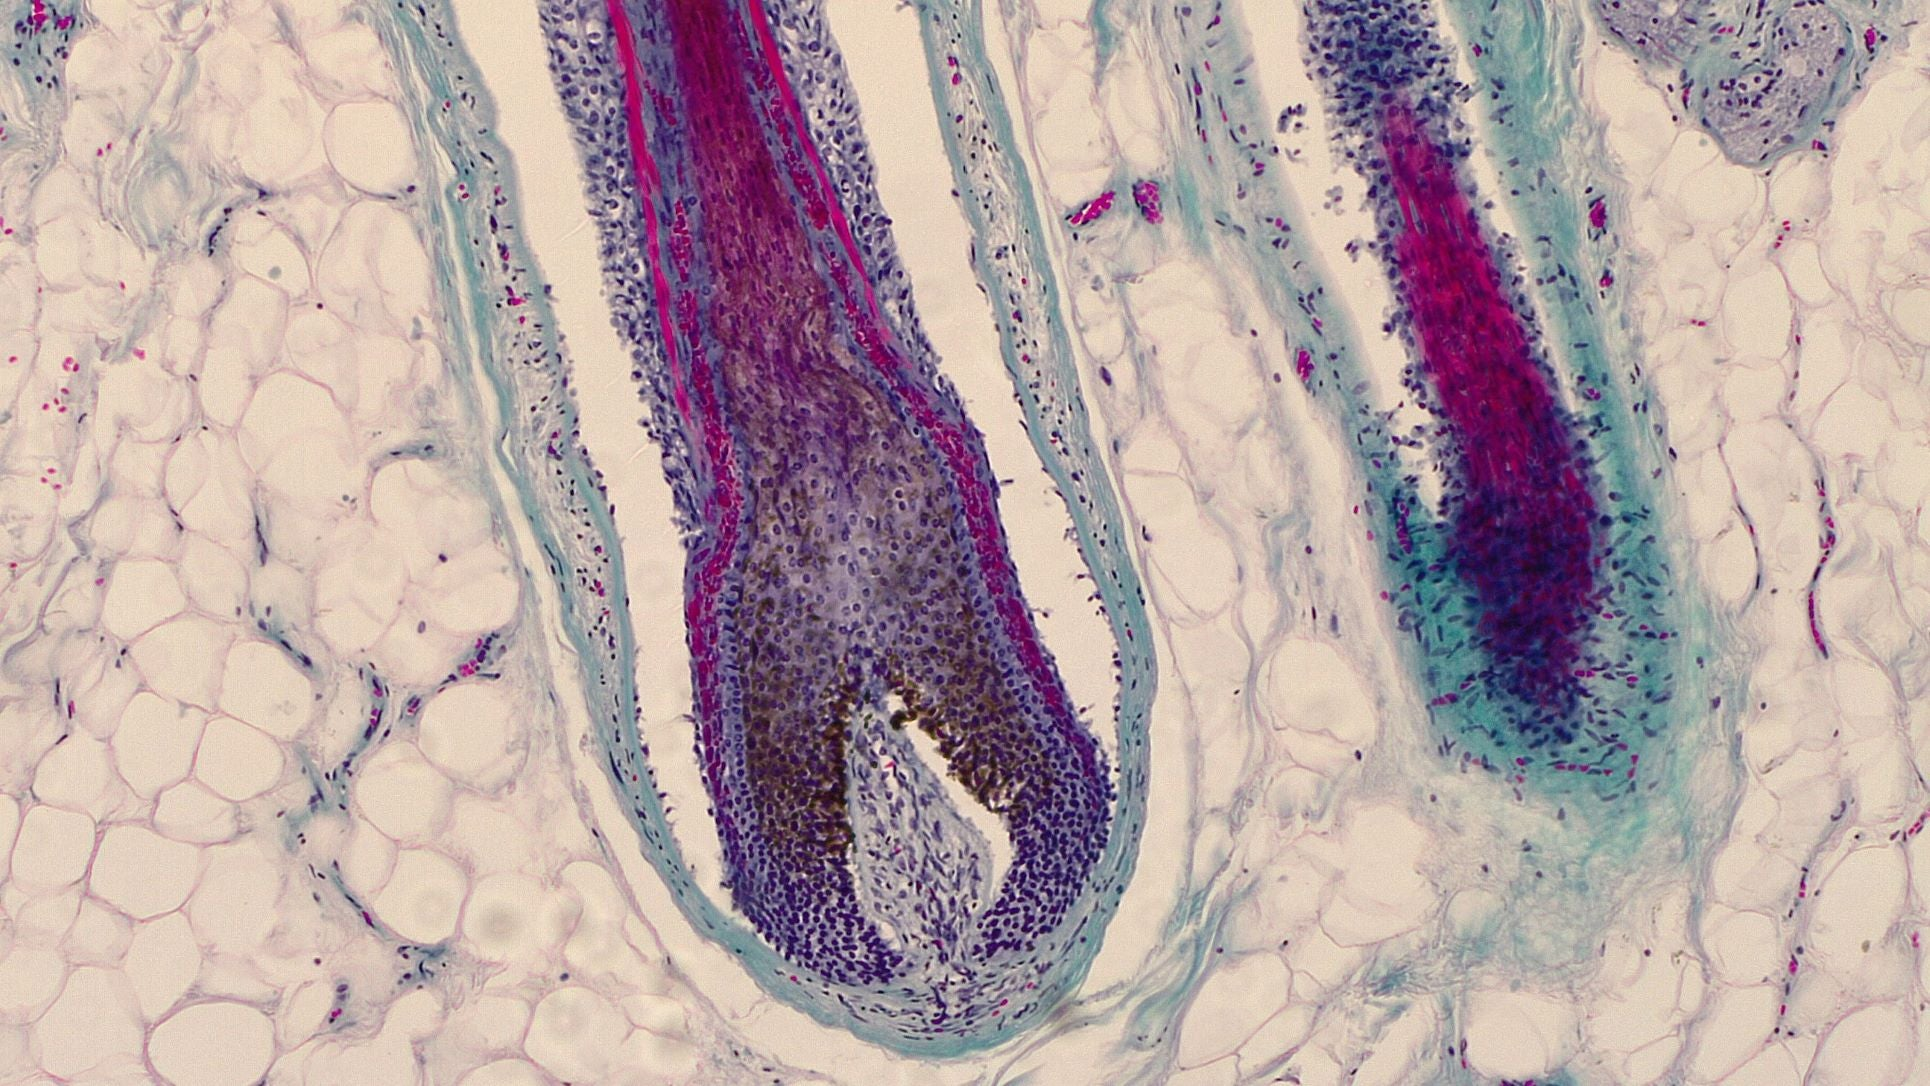 hair follicles affected by DHT